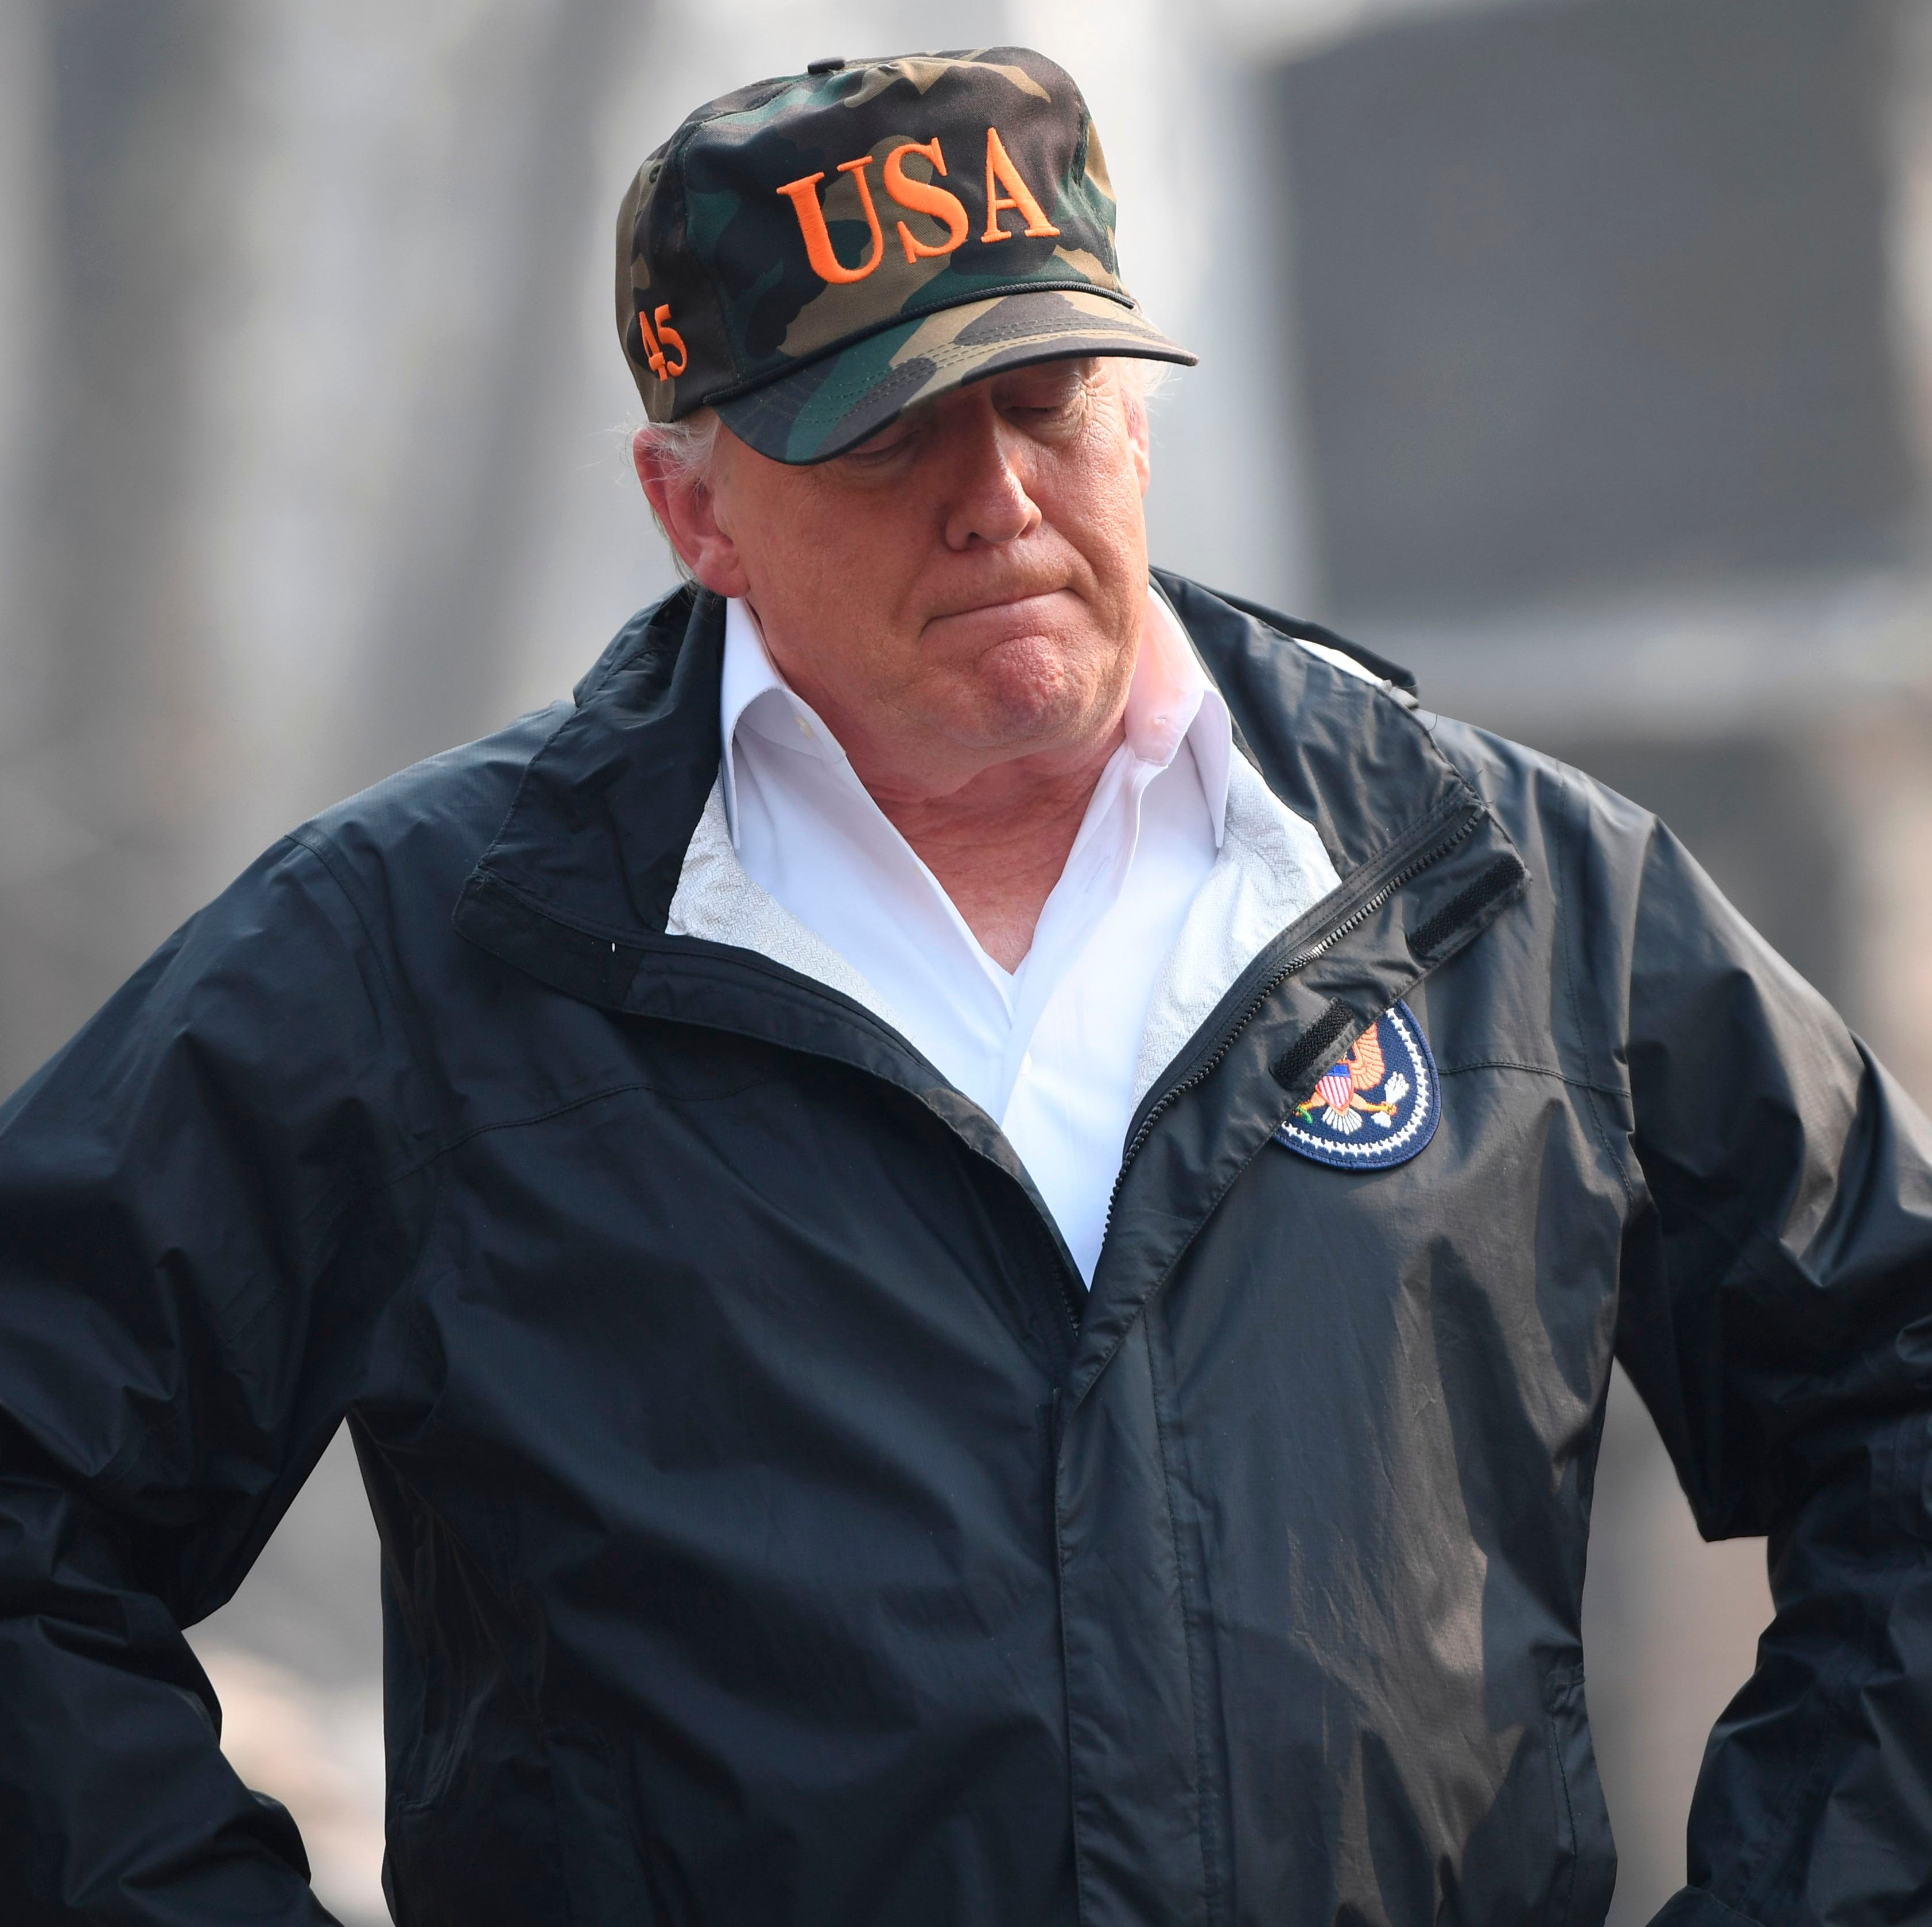 Trump's visit at Camp Fire devastation brings support, criticism after his tweets